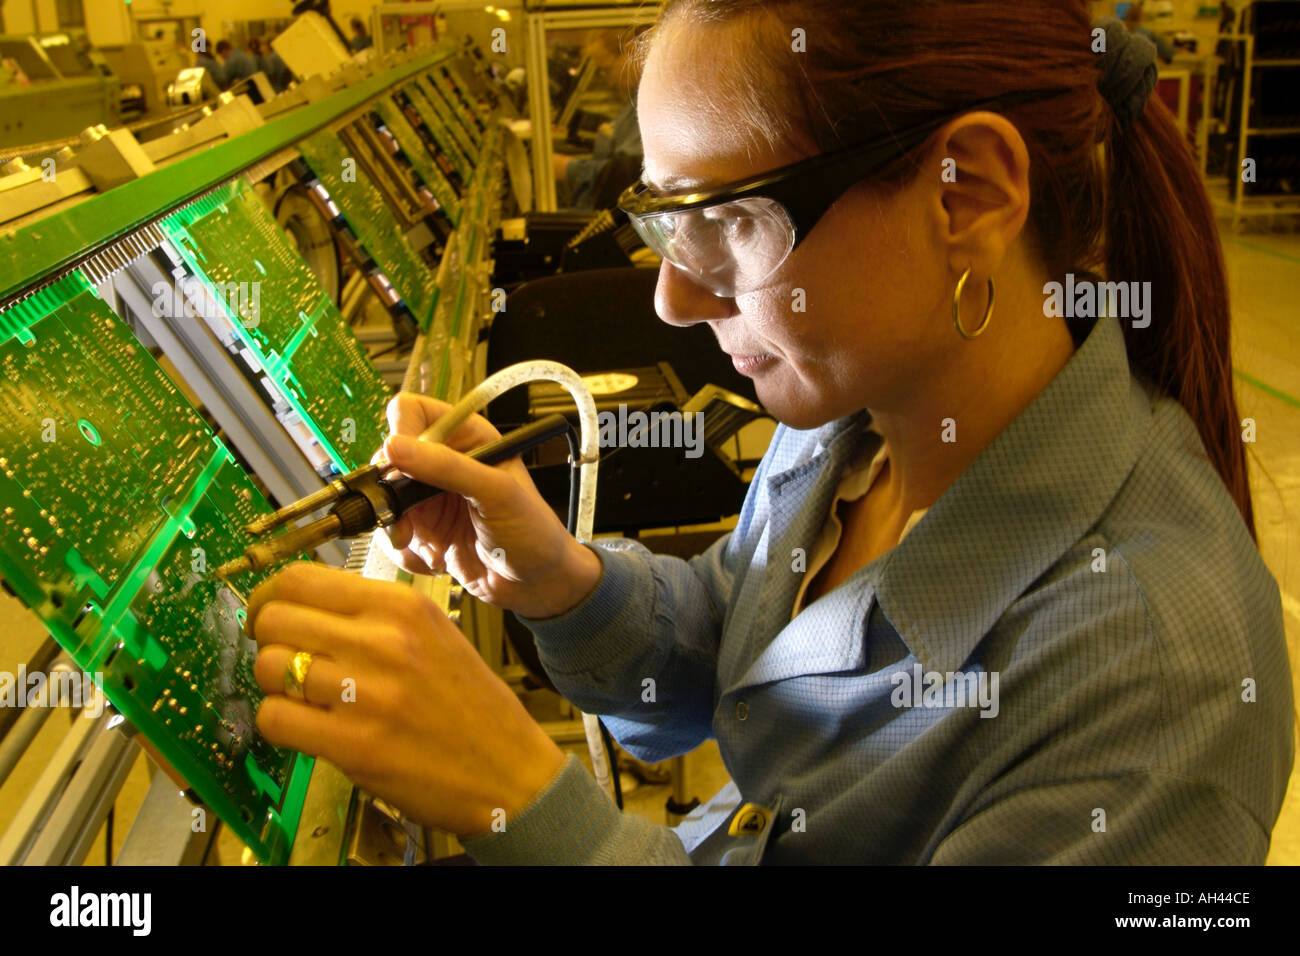 Tremendous Production Operator Soldering Circuit Boards At Axiom Manufacturing Wiring 101 Cabaharperaodorg